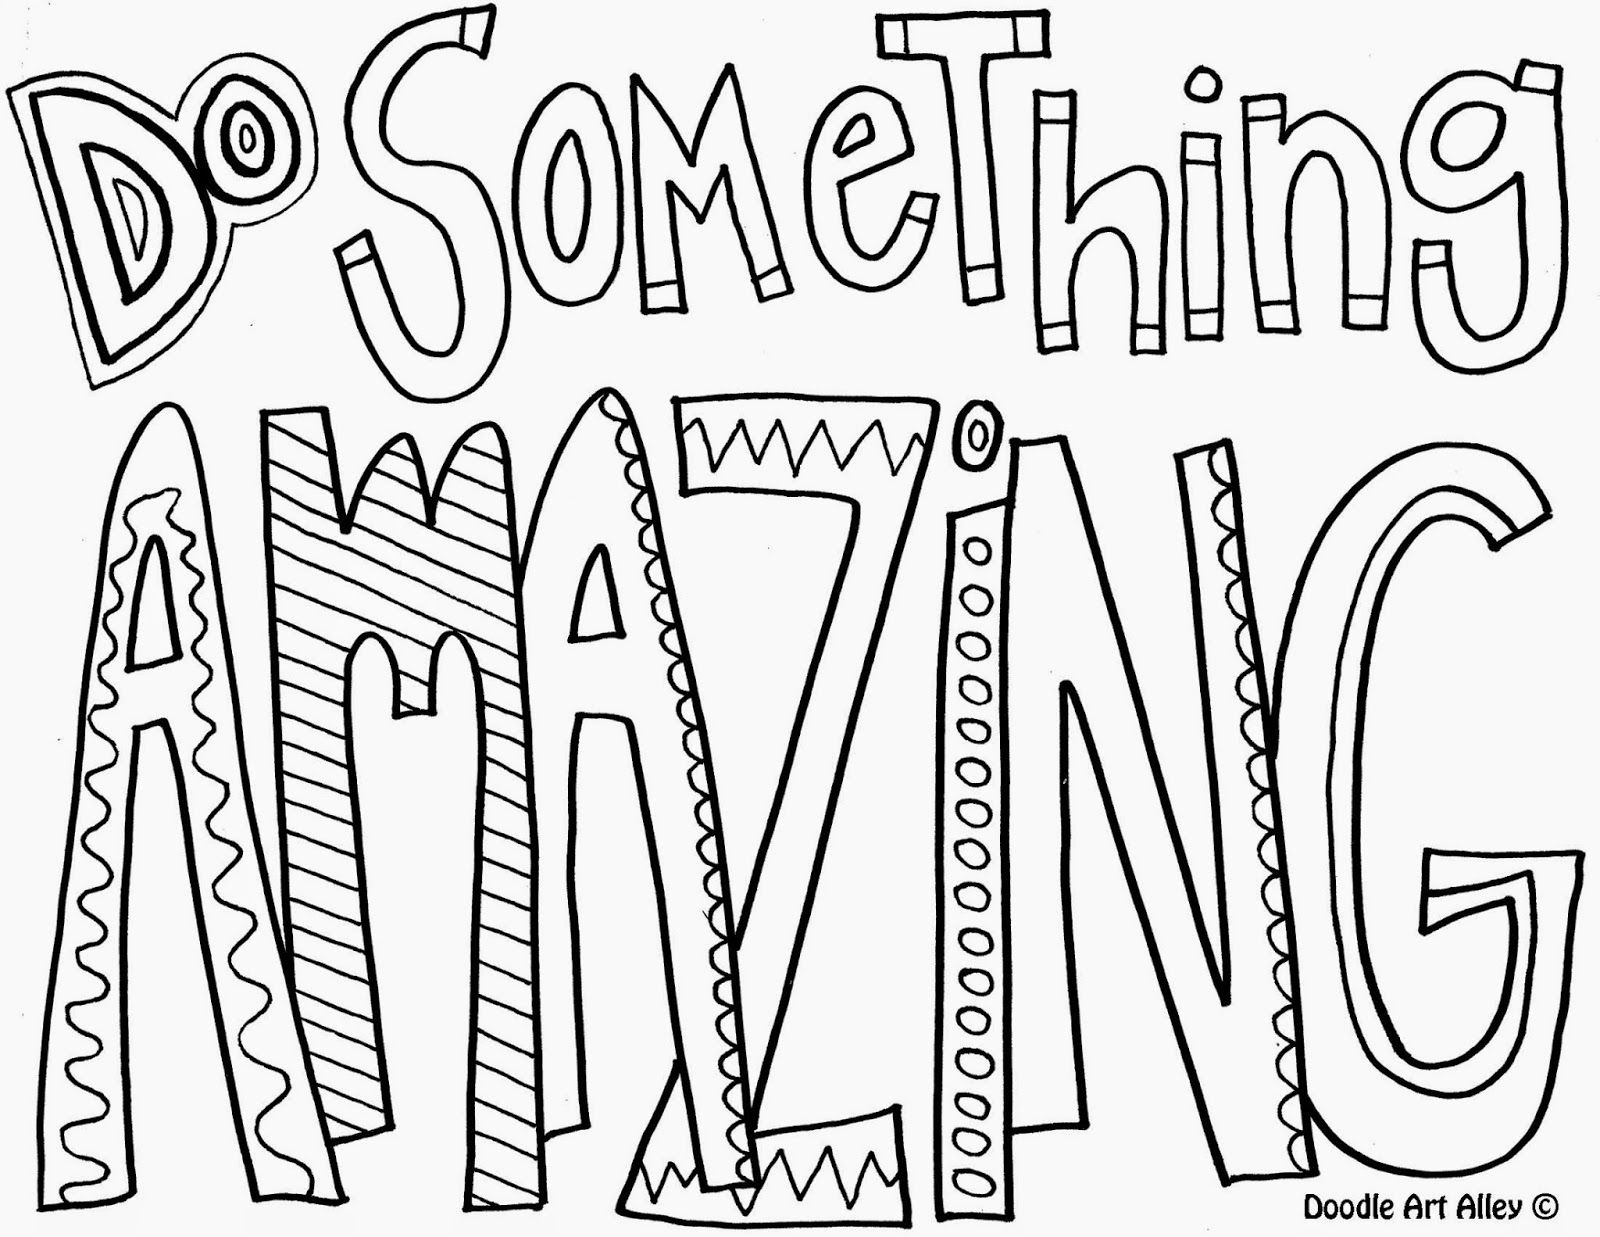 Do something amazing - Quote Coloring Pages | LOVE | Pinterest ...